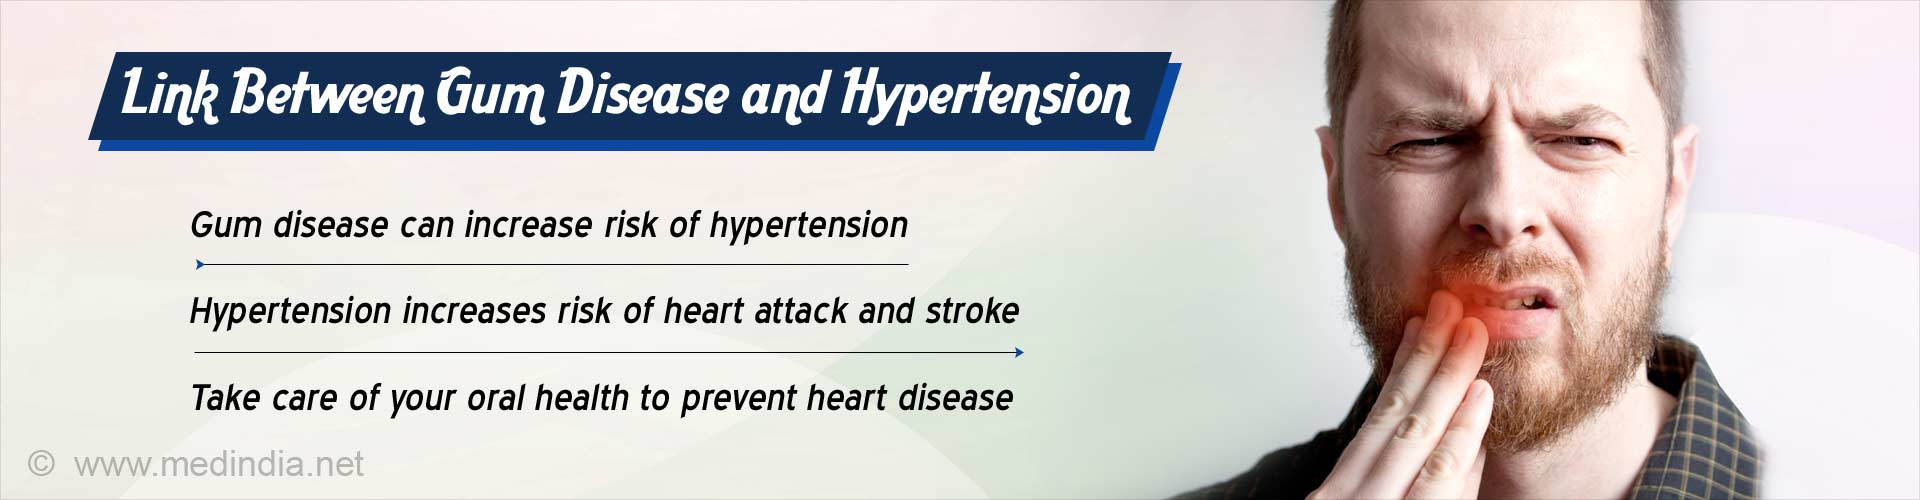 Link between gum disease and hypertension. Gum disease can increase risk of hypertension. Hypertension increases risk of heart attack and stroke. Take care of your oral health to prevent heart disease.